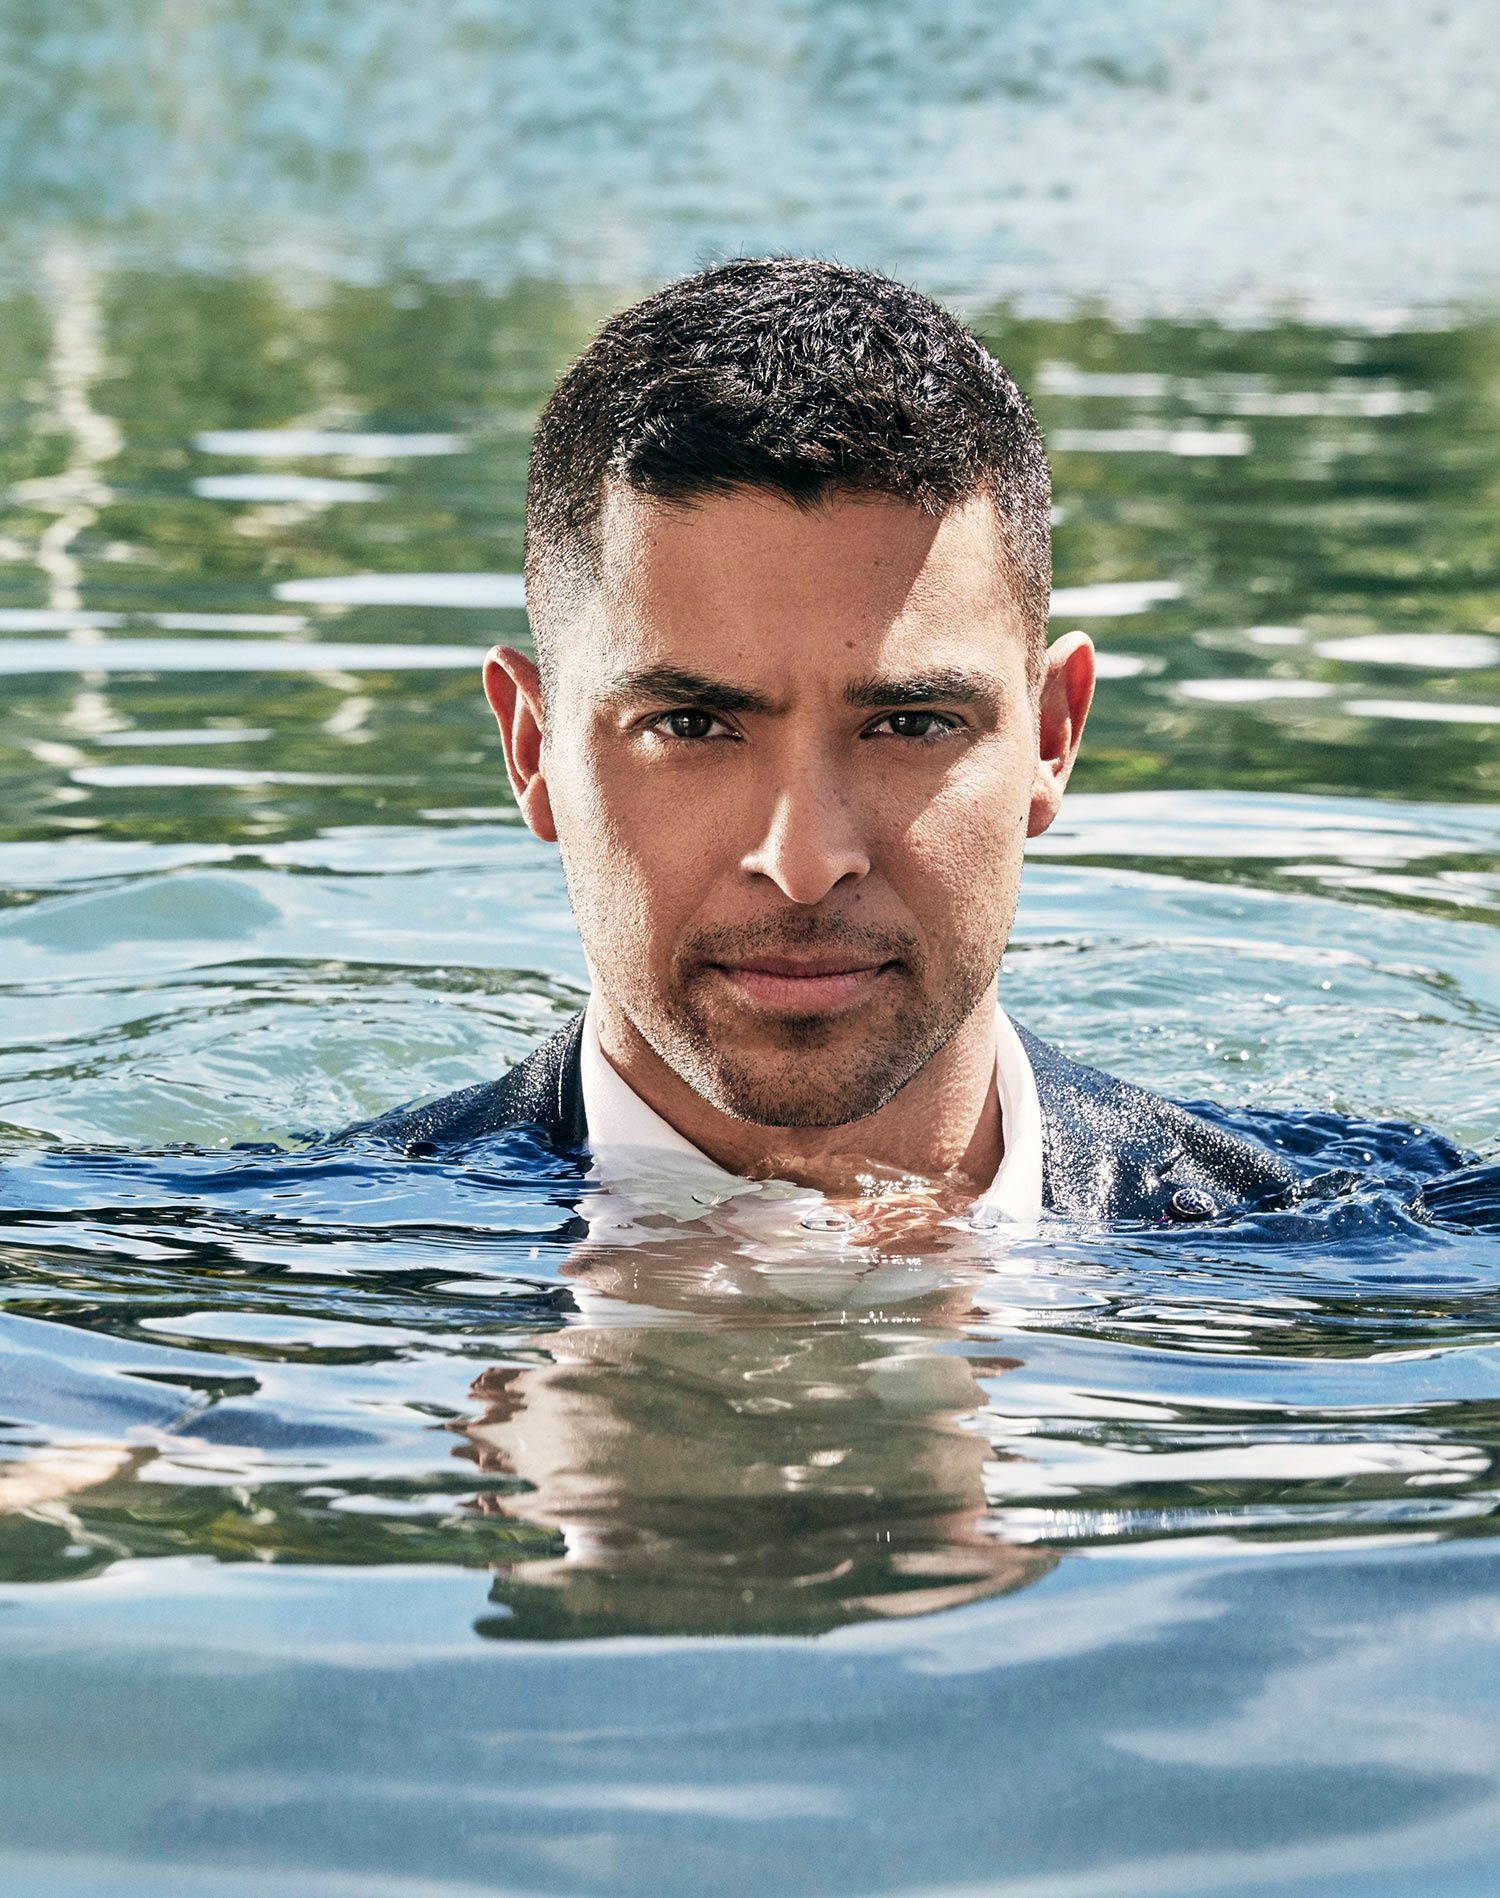 Wilmer Valderrama wearing a suit while in a body of water with just his head above the water